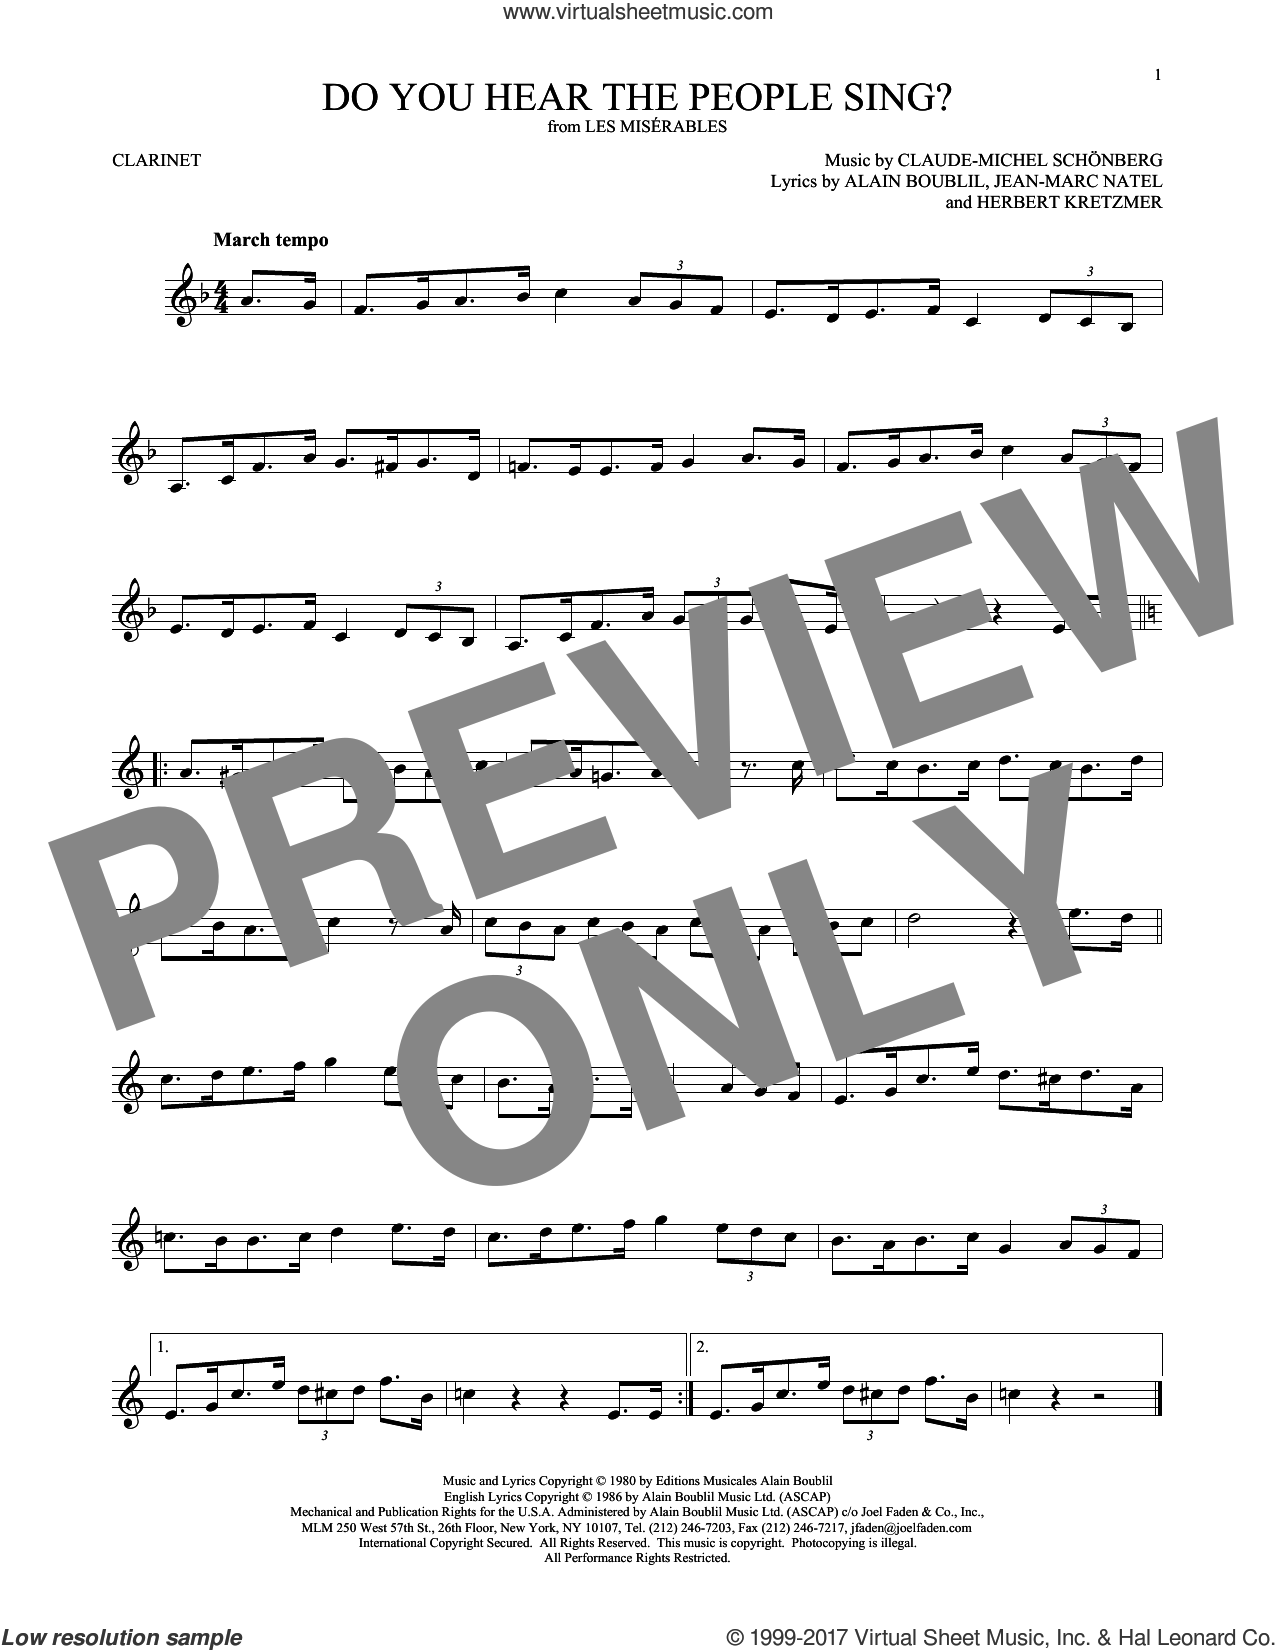 Do You Hear The People Sing? sheet music for clarinet solo by Alain Boublil, Claude-Michel Schonberg, Herbert Kretzmer and Jean-Marc Natel, intermediate skill level